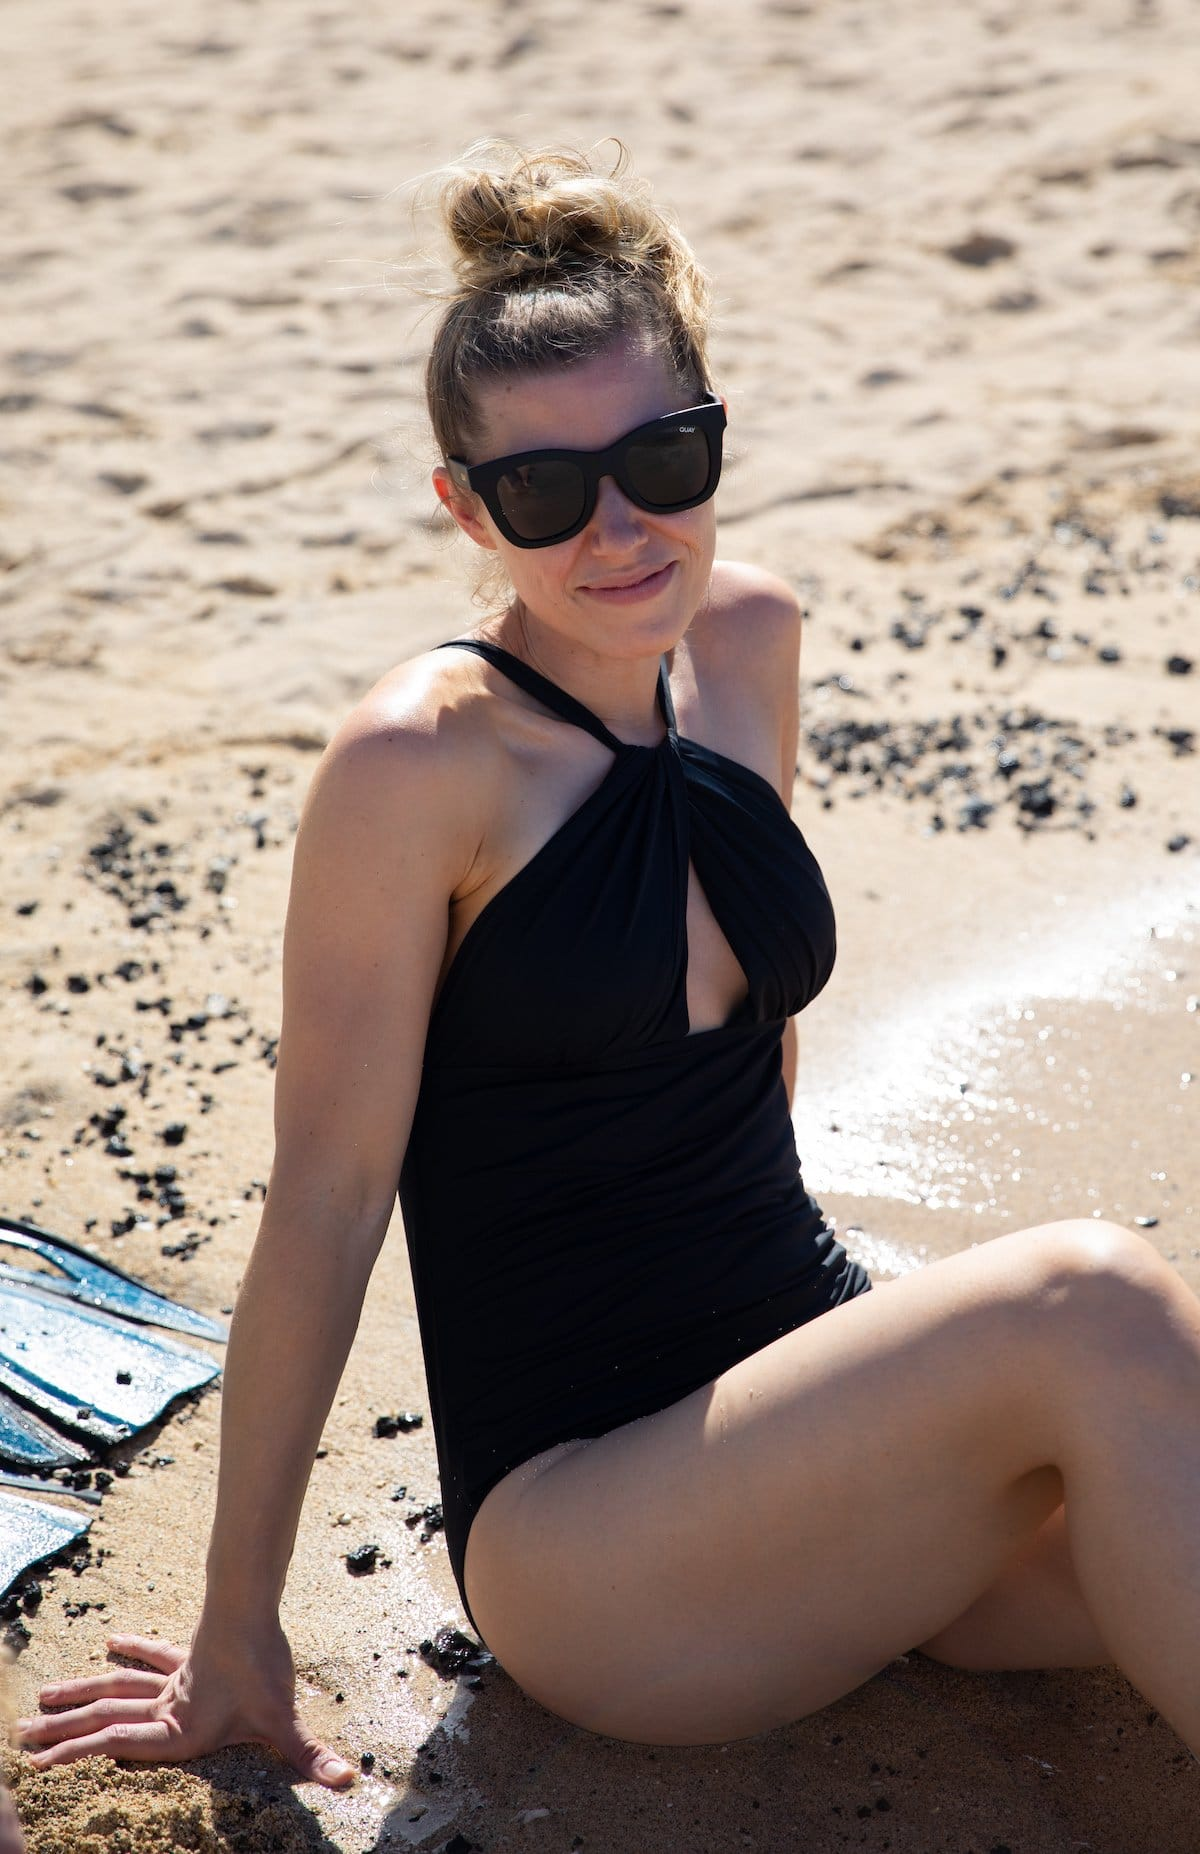 lady sitting on sand in swimsuit